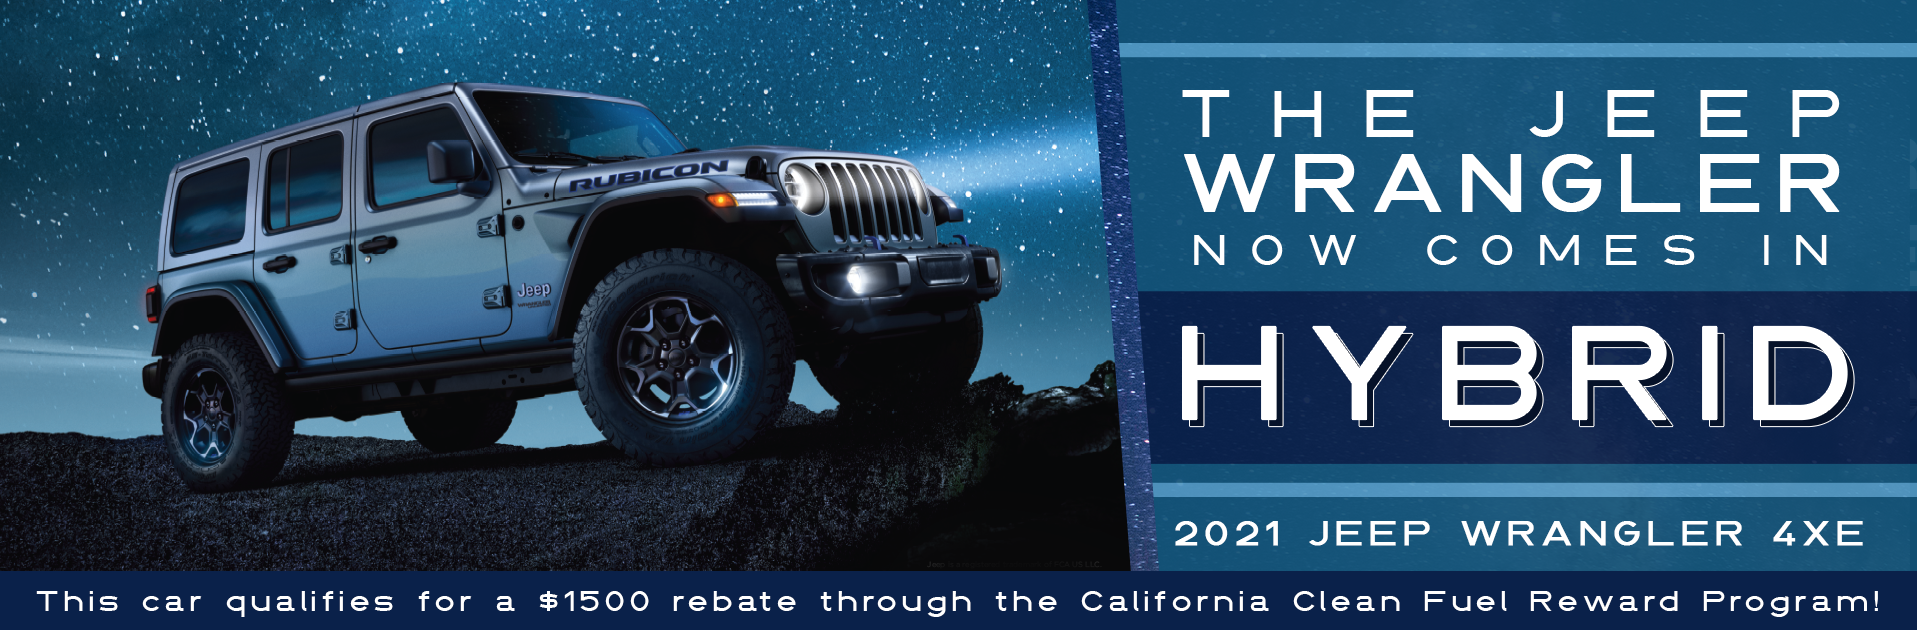 California Clean Fuel Reward Jeep Wrangler 4xe